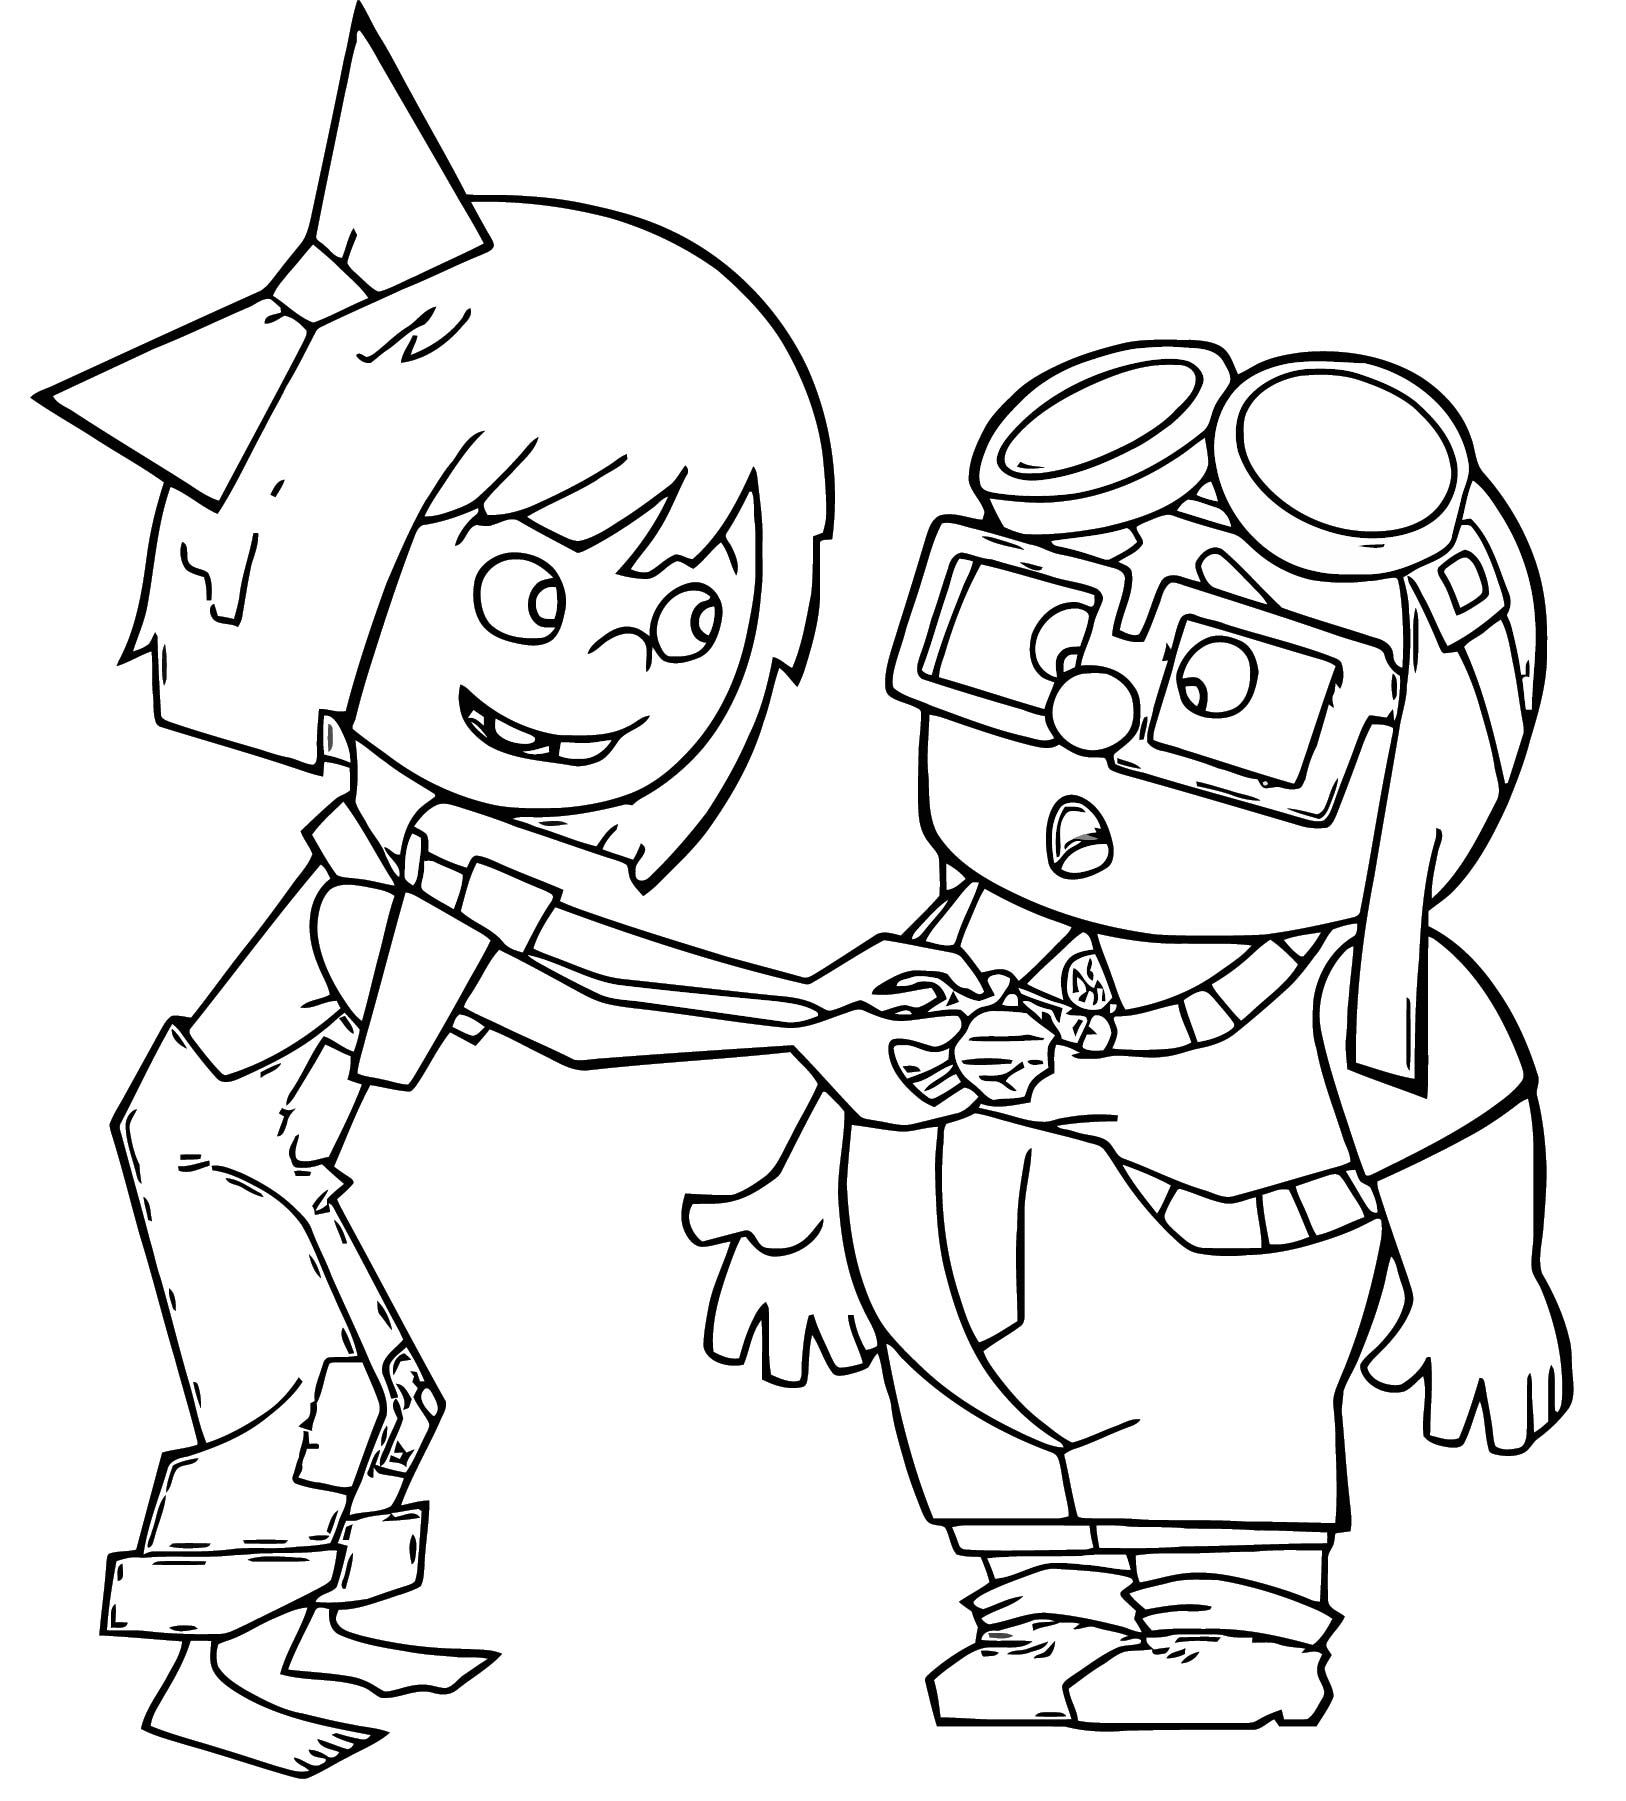 Pin By Laura Tolosa On Coloring Pages Disney Up Disney Coloring Pages Disney Pixar Up